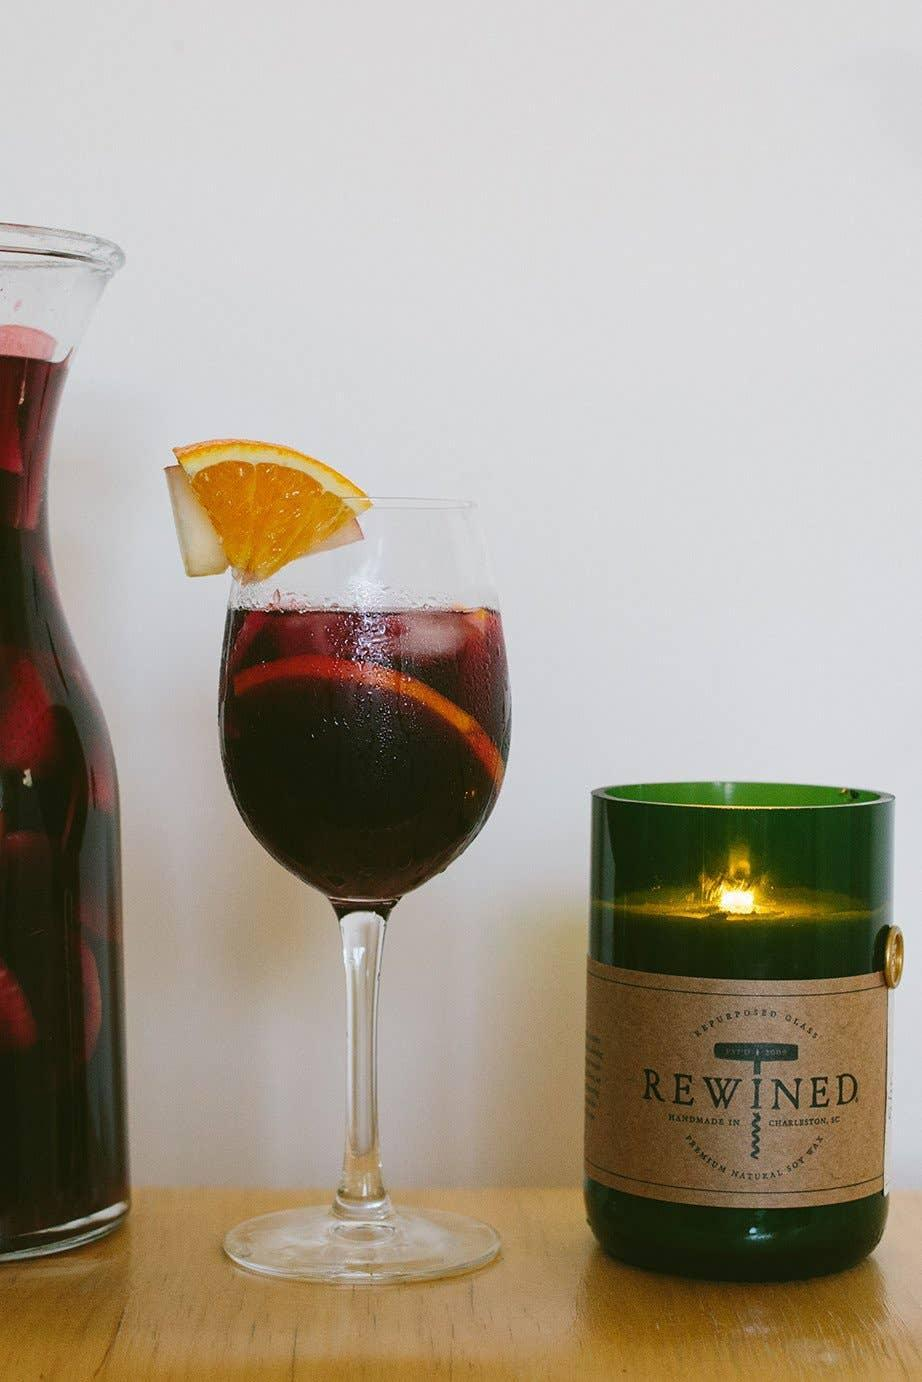 REWINED - Sangria Signature Candle